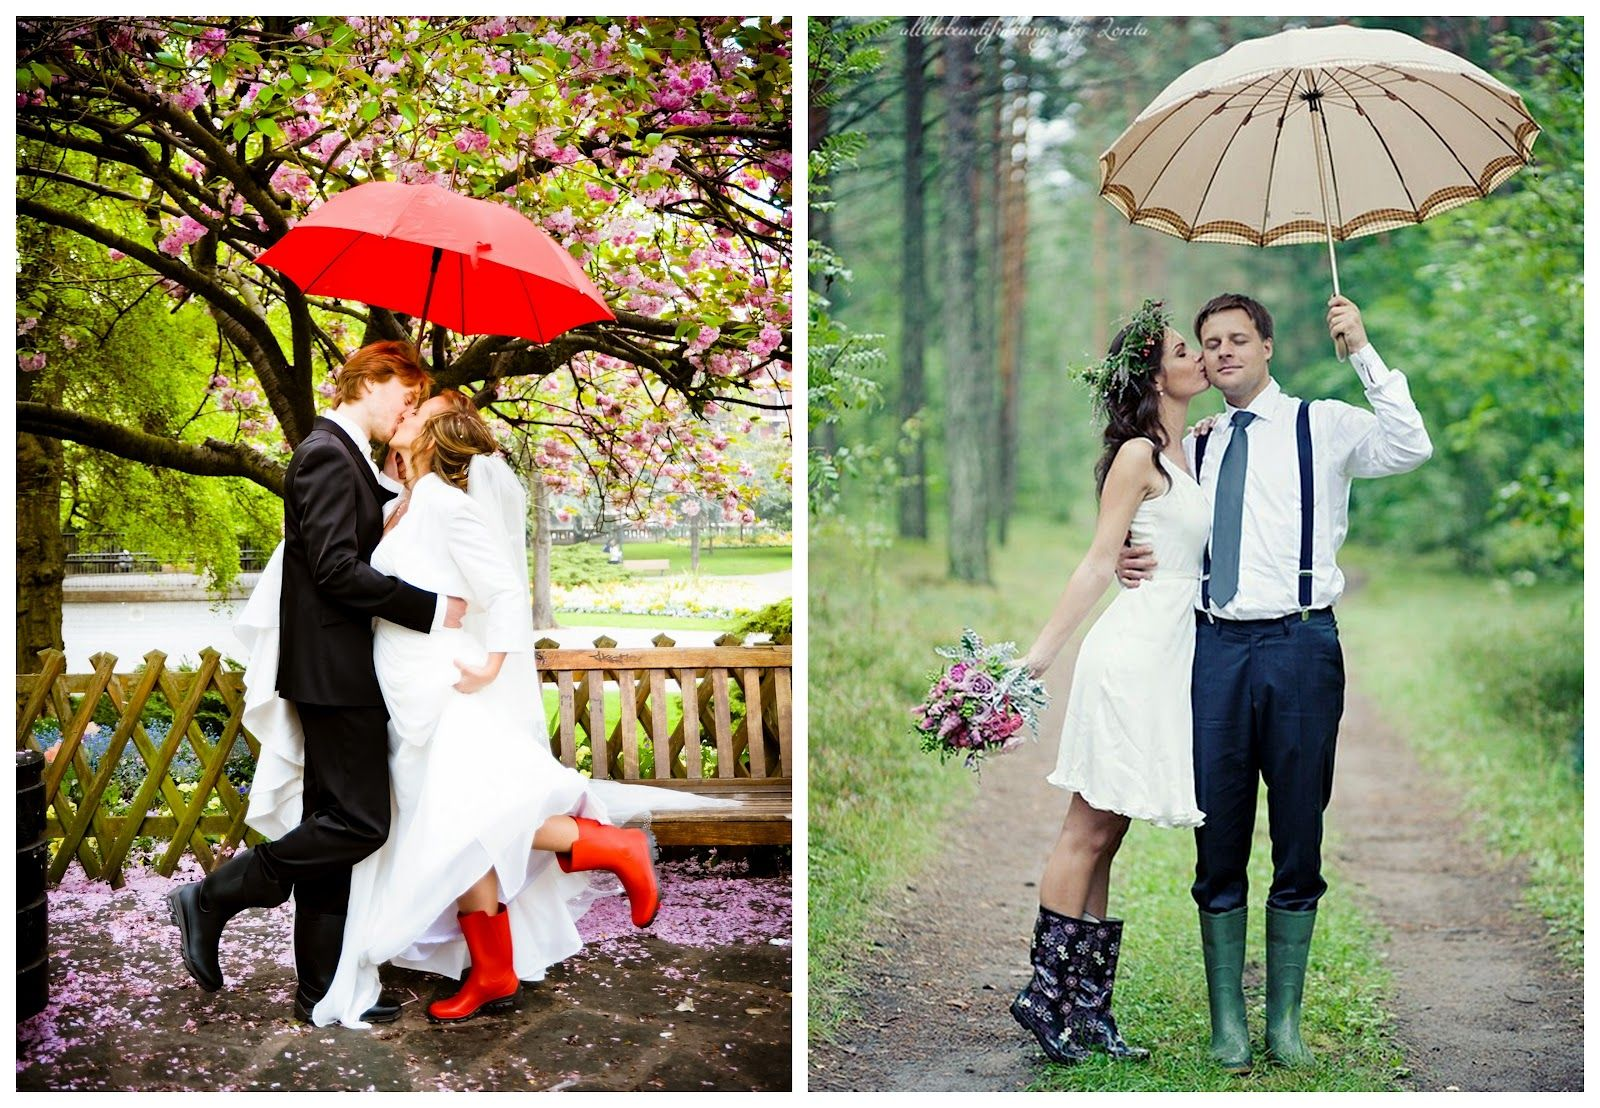 Rainy Wedding Day So Lovely Because You Just Never Know What The Weather Will